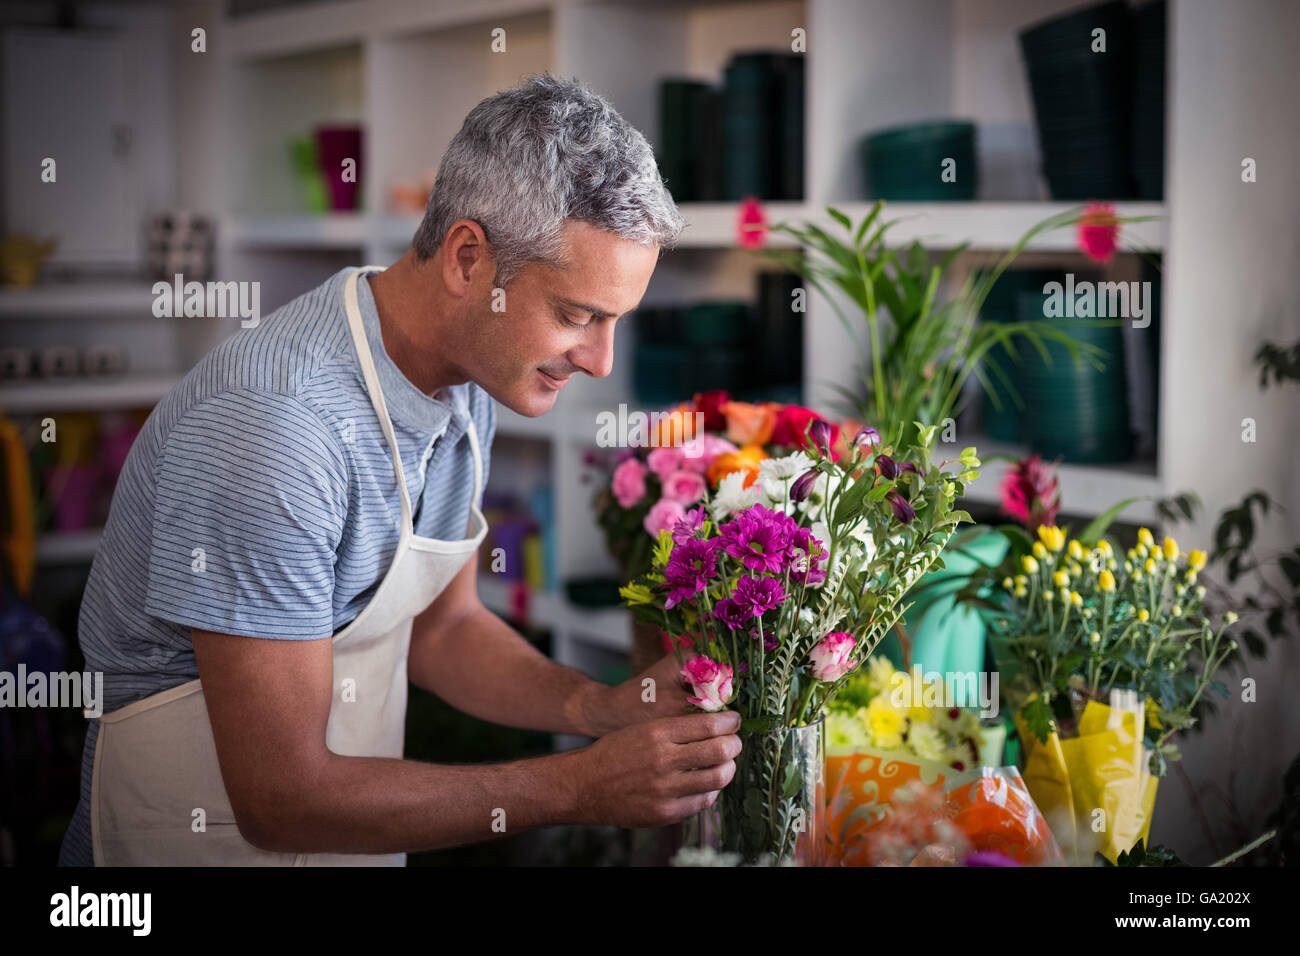 Florist preparing a flower bouquet - Stock Image